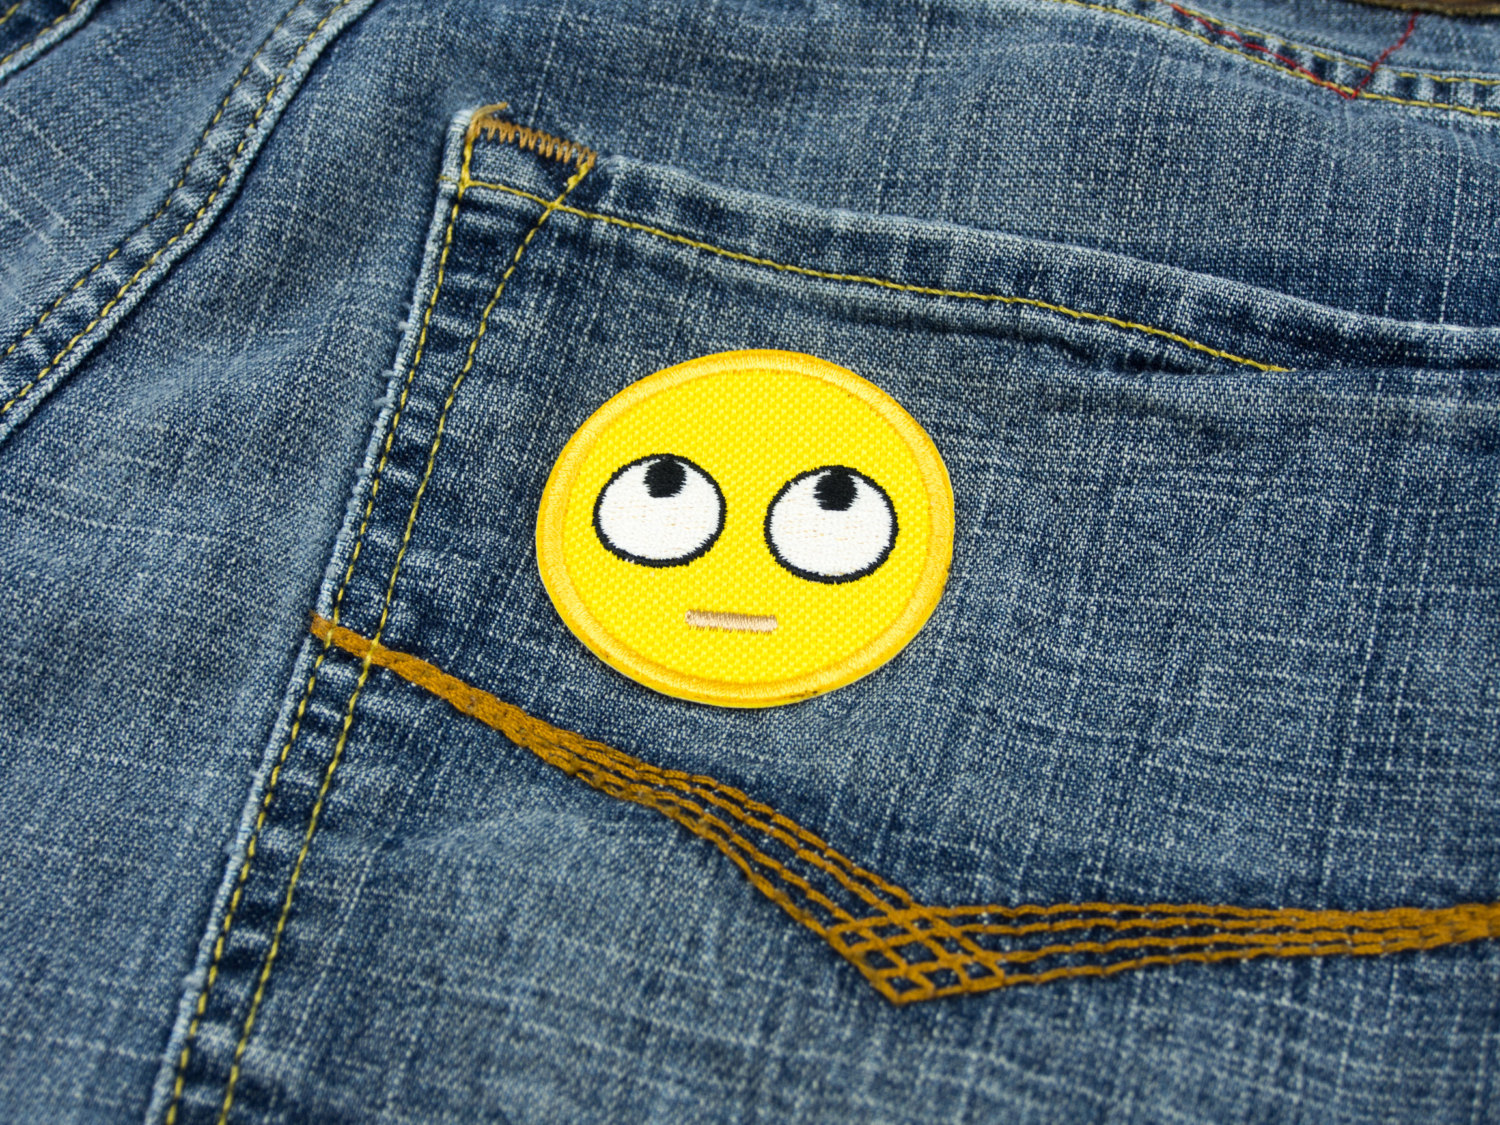 Eyeroll emoji patch